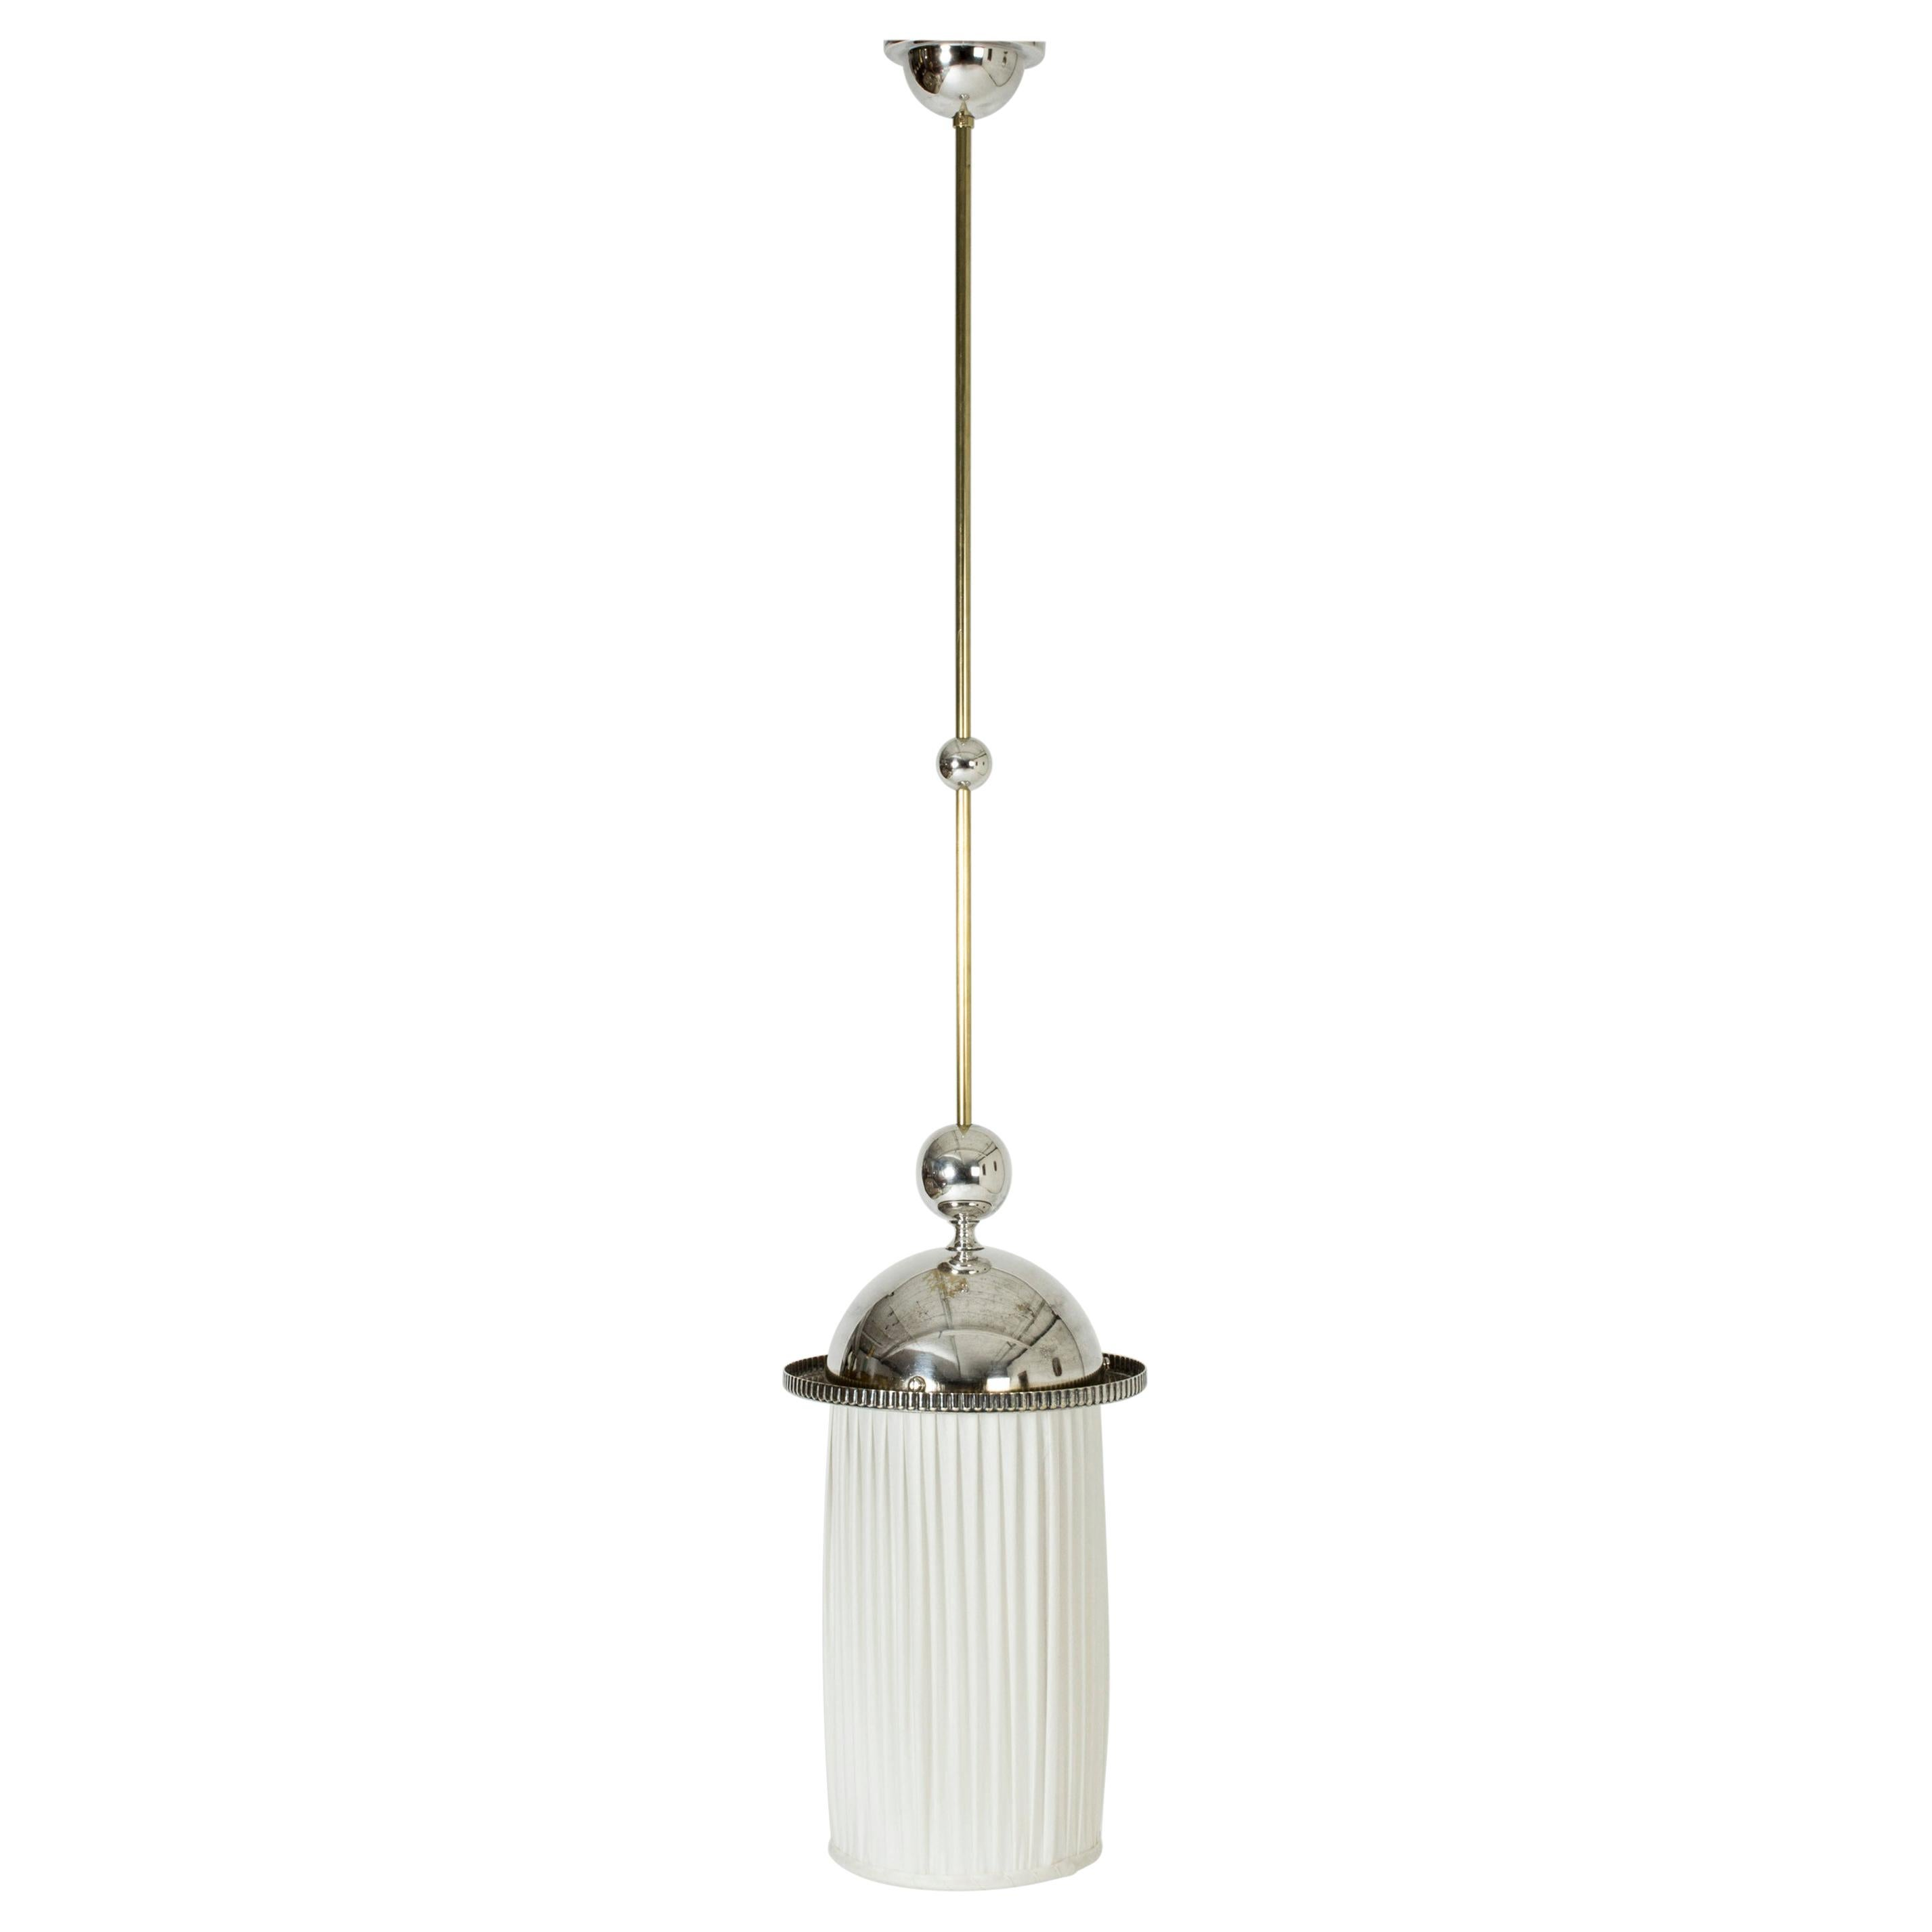 Ceiling Lamp by Elis Bergh for C.G. Hallberg, Sweden, 1920s